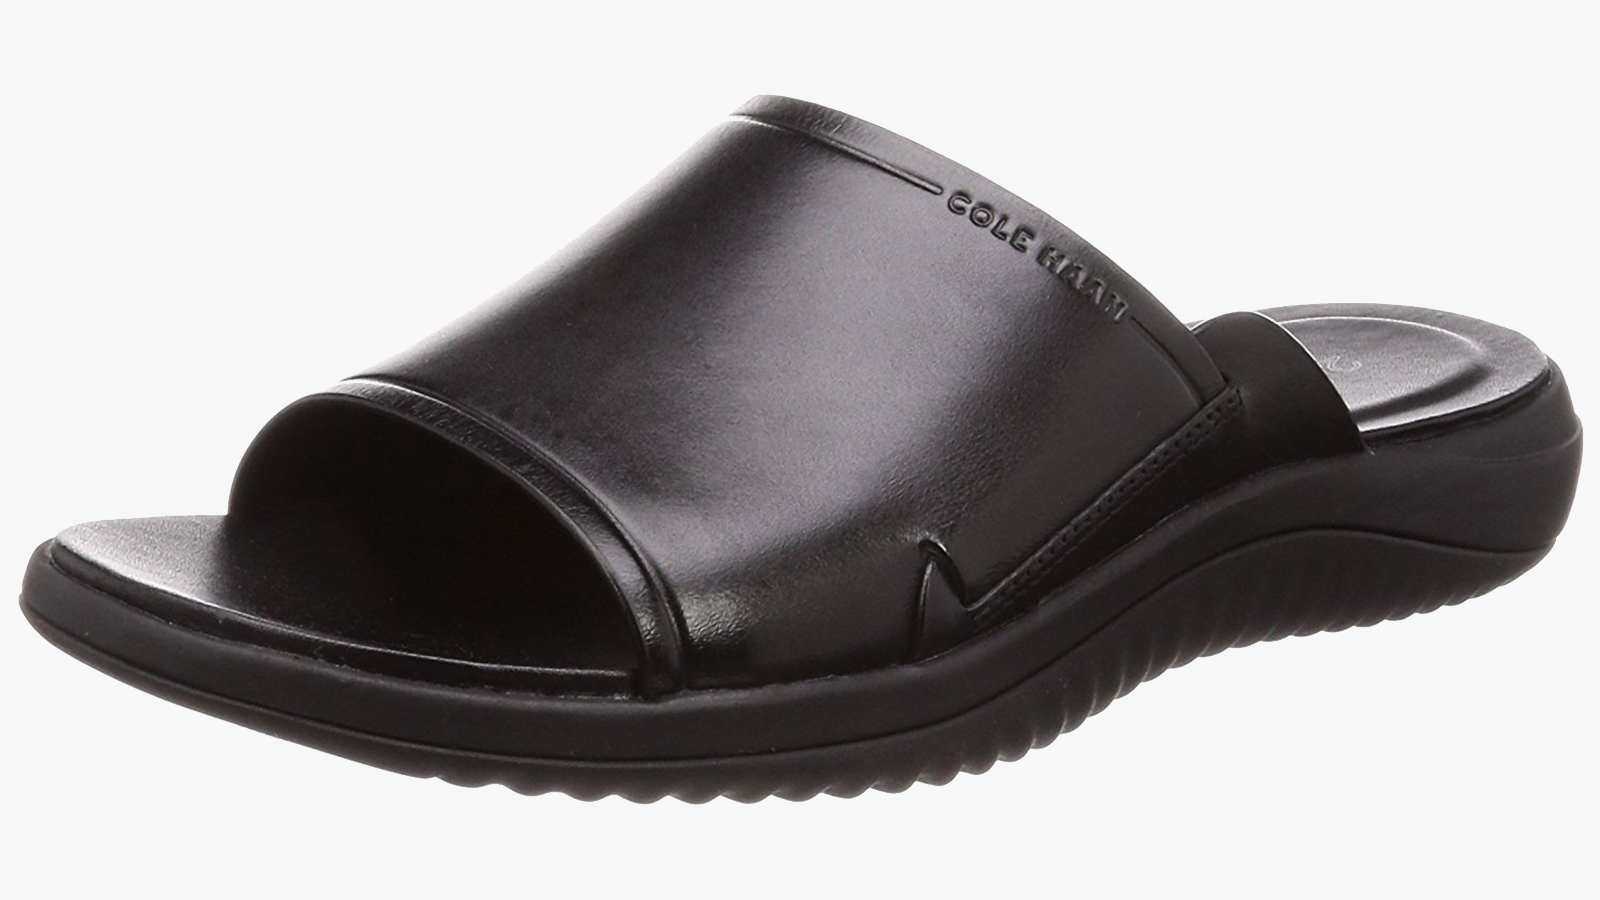 Cole Haan ZeroGrand 2 Men's Slides